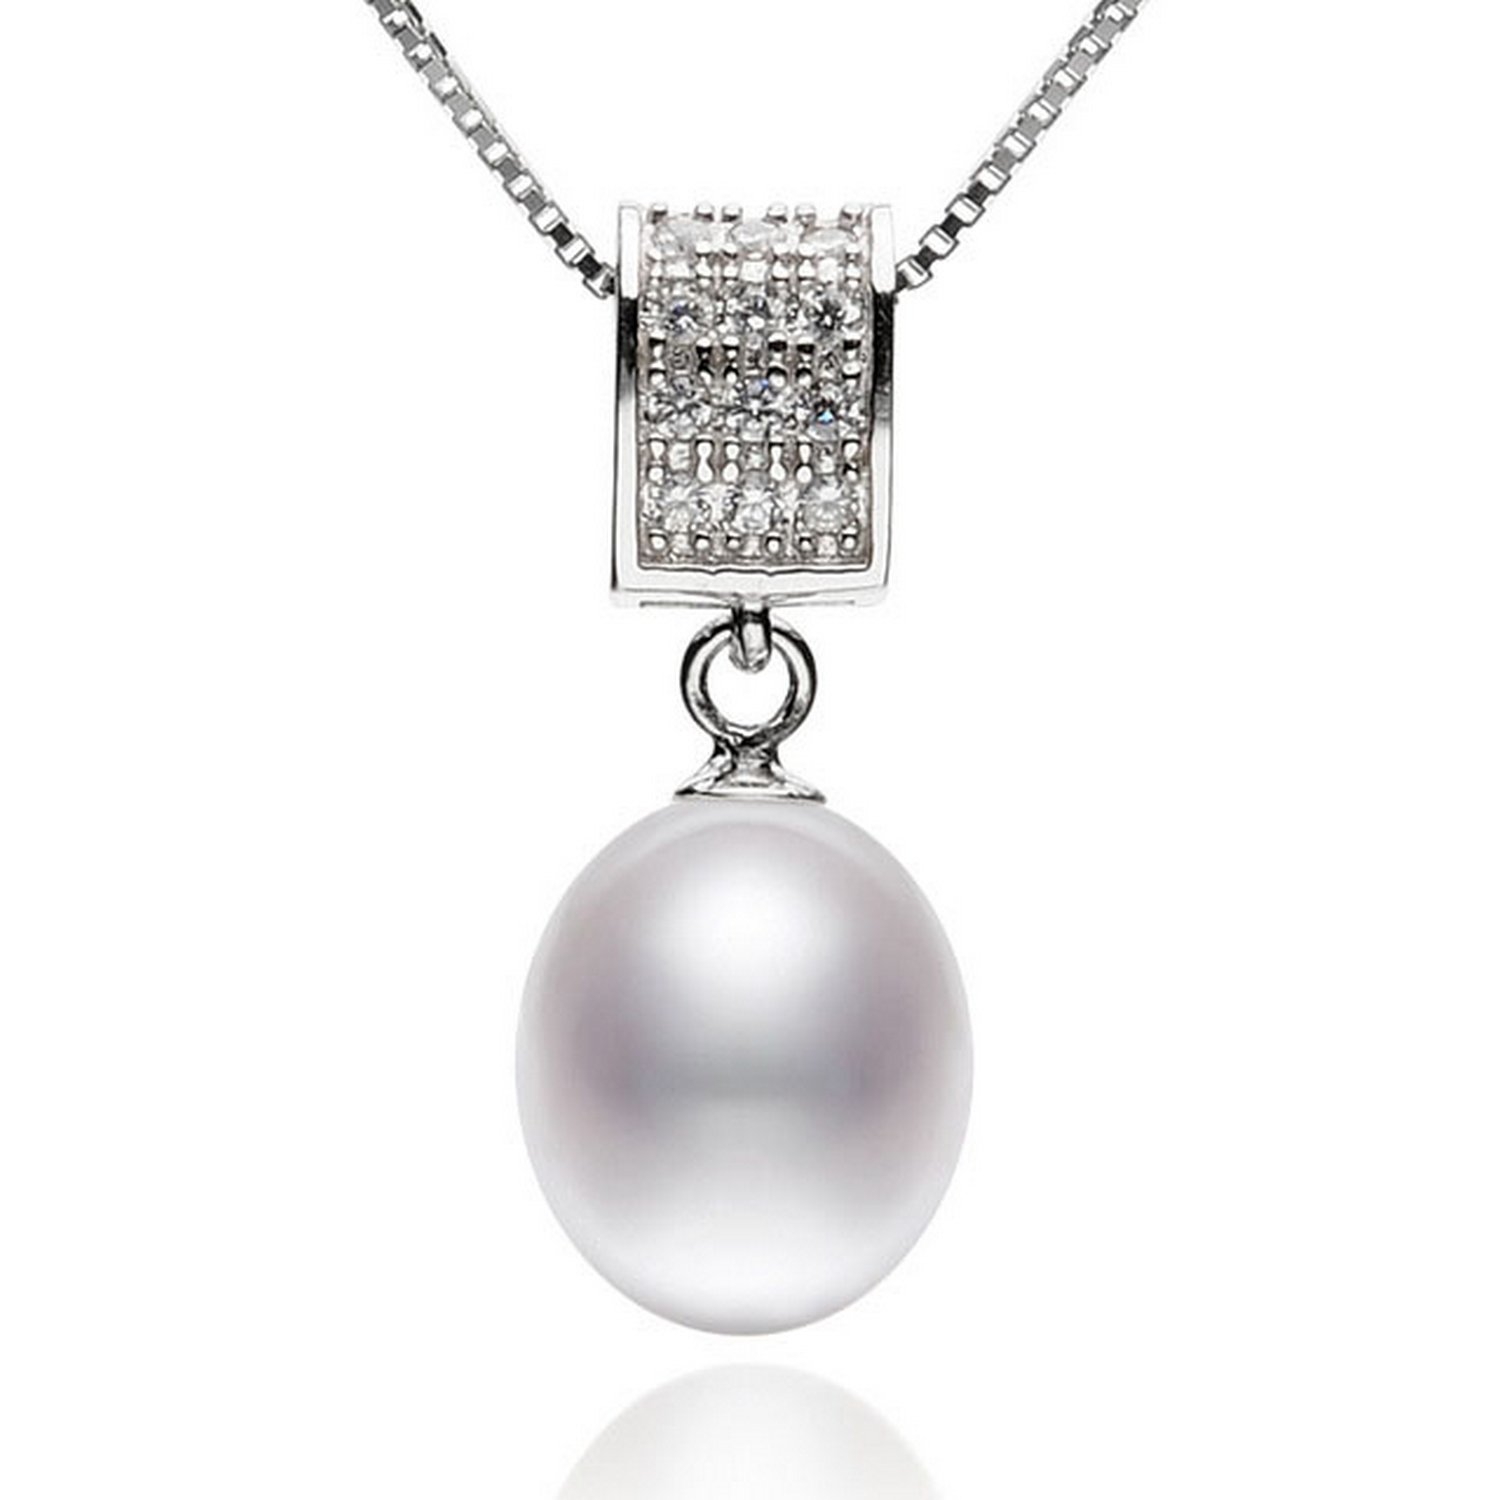 CS-DB Jewelry Silver Rice Pearl Chain Charm Pendants Necklaces